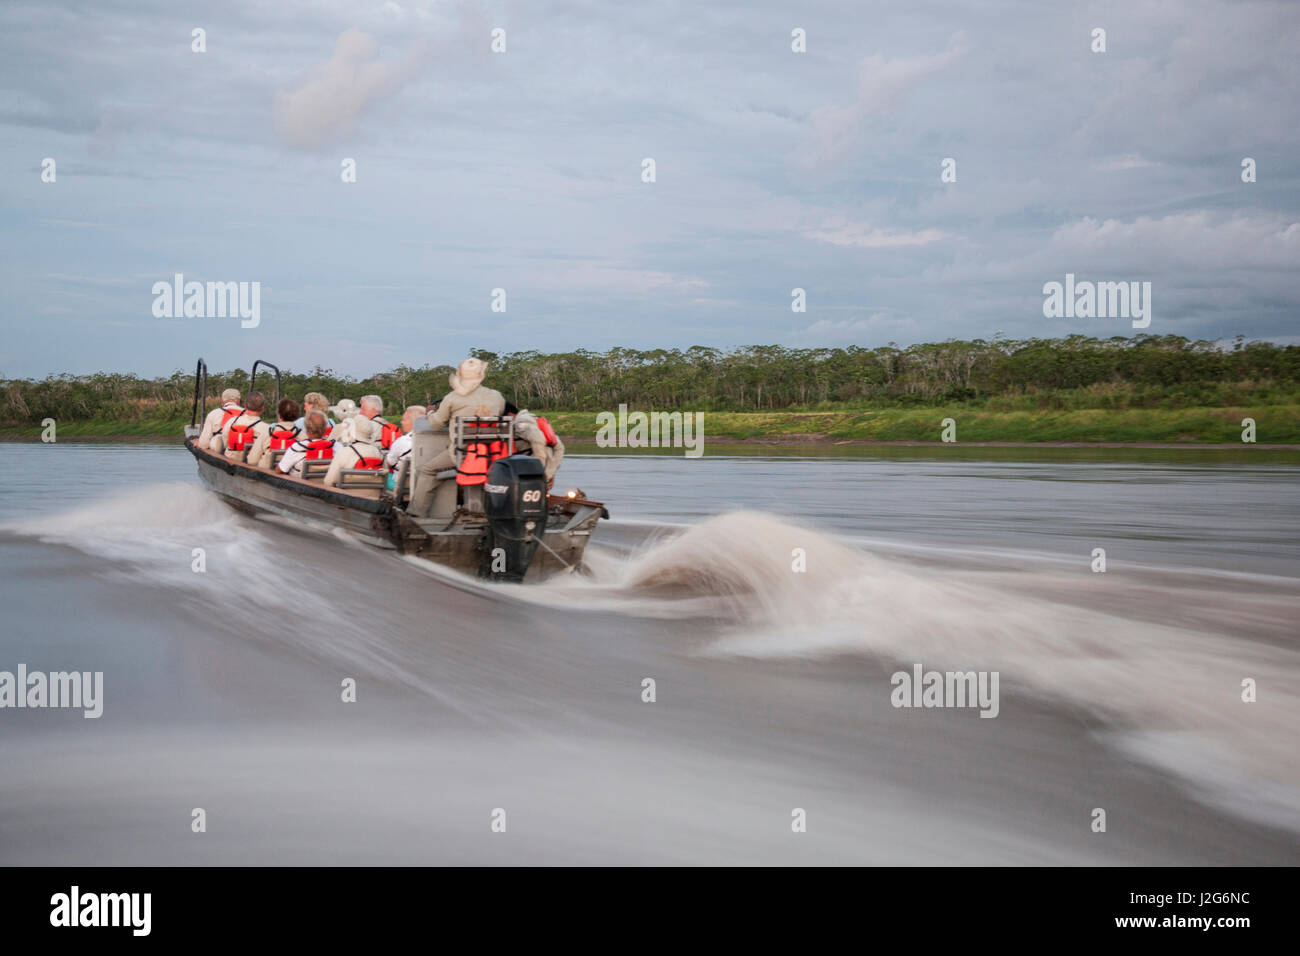 This is a group of tourists exploring the Maranon River in the Amazon Rainforest. - Stock Image